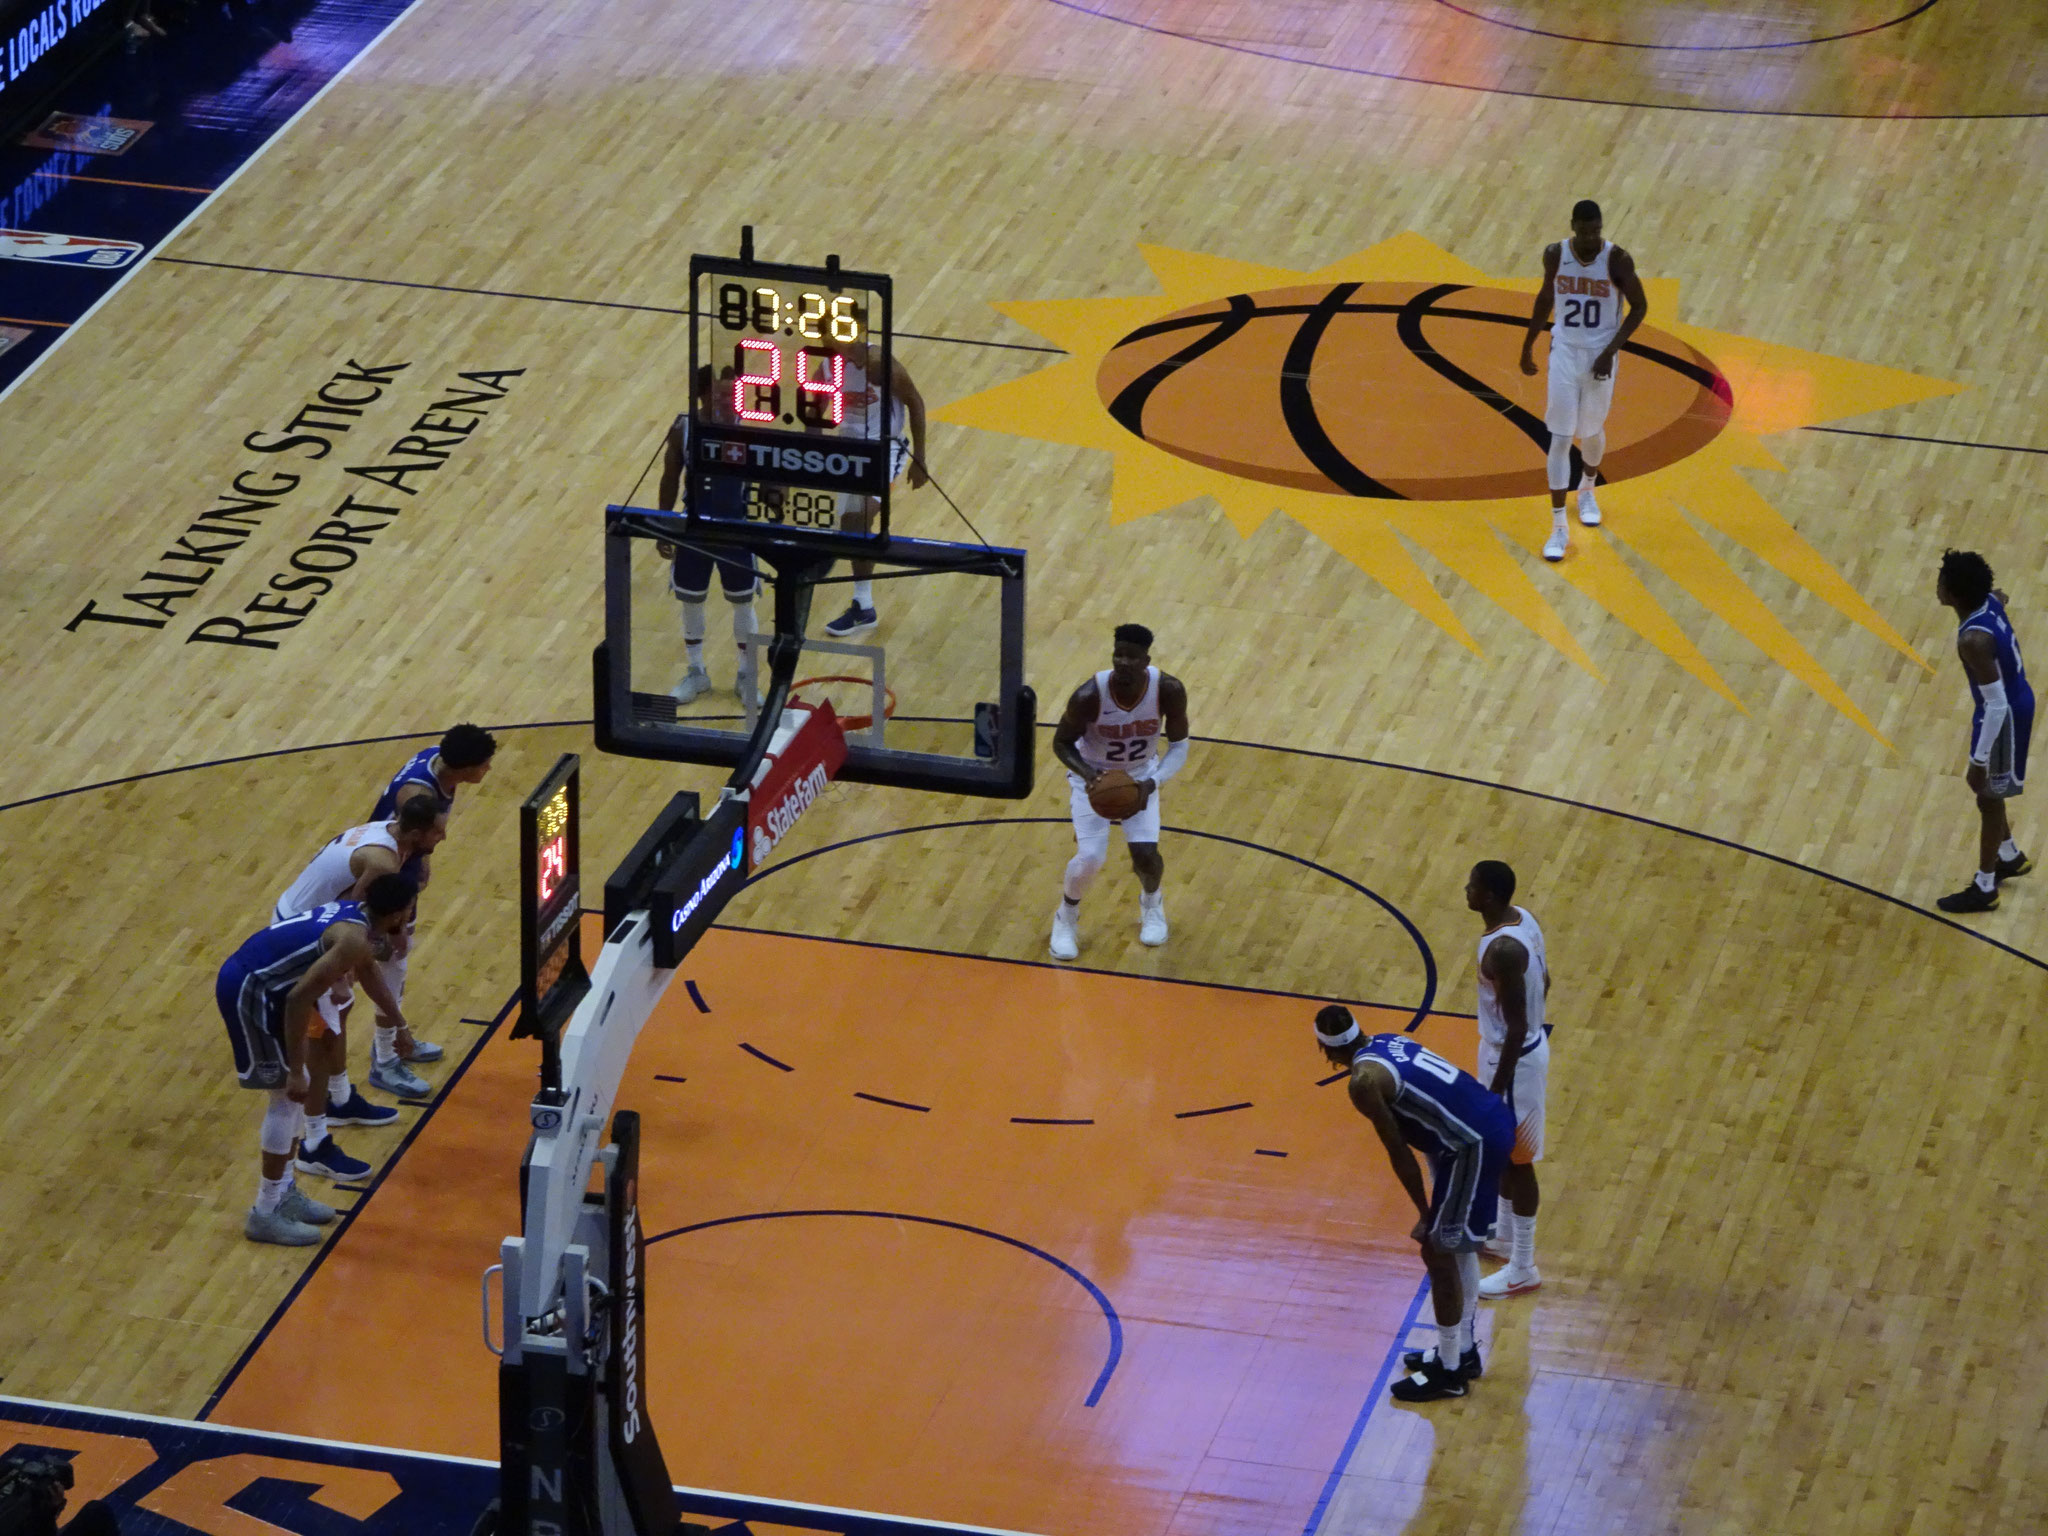 Phoenix Suns vs Sacramento Kings (2018/19)